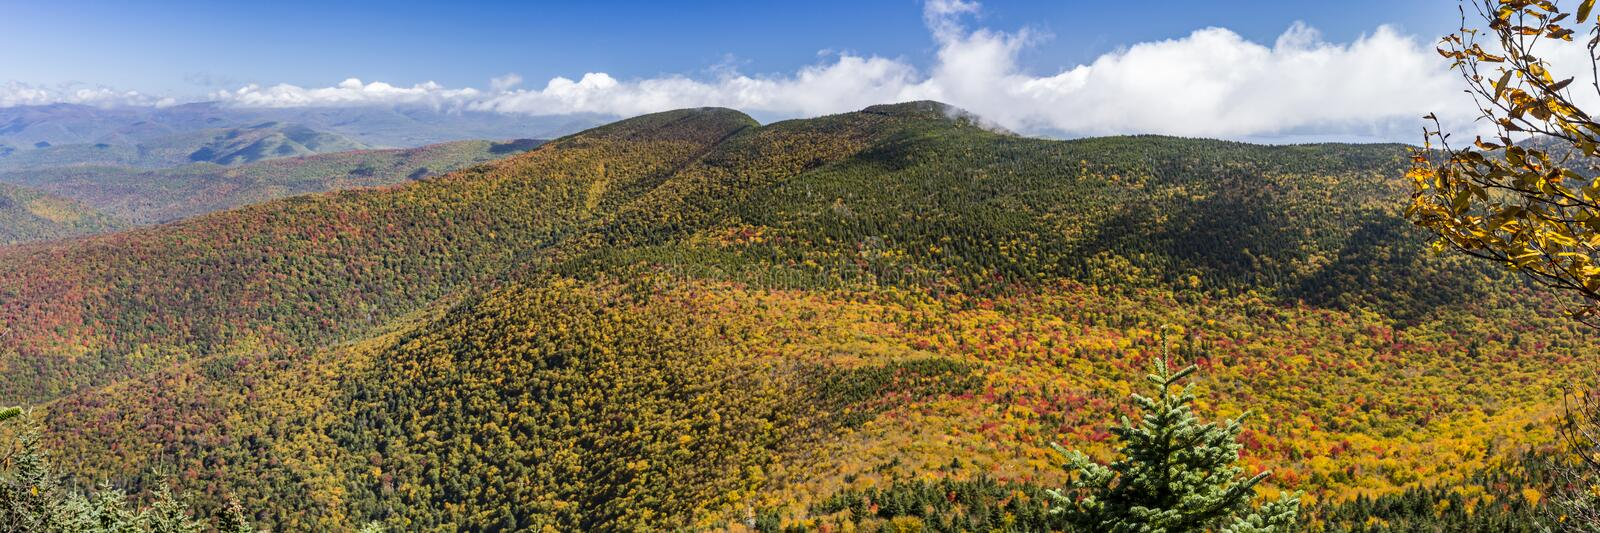 Peak Color Panorama from Slide Mountain. Cornell and Wittenburg Mountains shrouded in misty clouds, seen from a lookout on Slide Mountain during peak Autumn royalty free stock photography